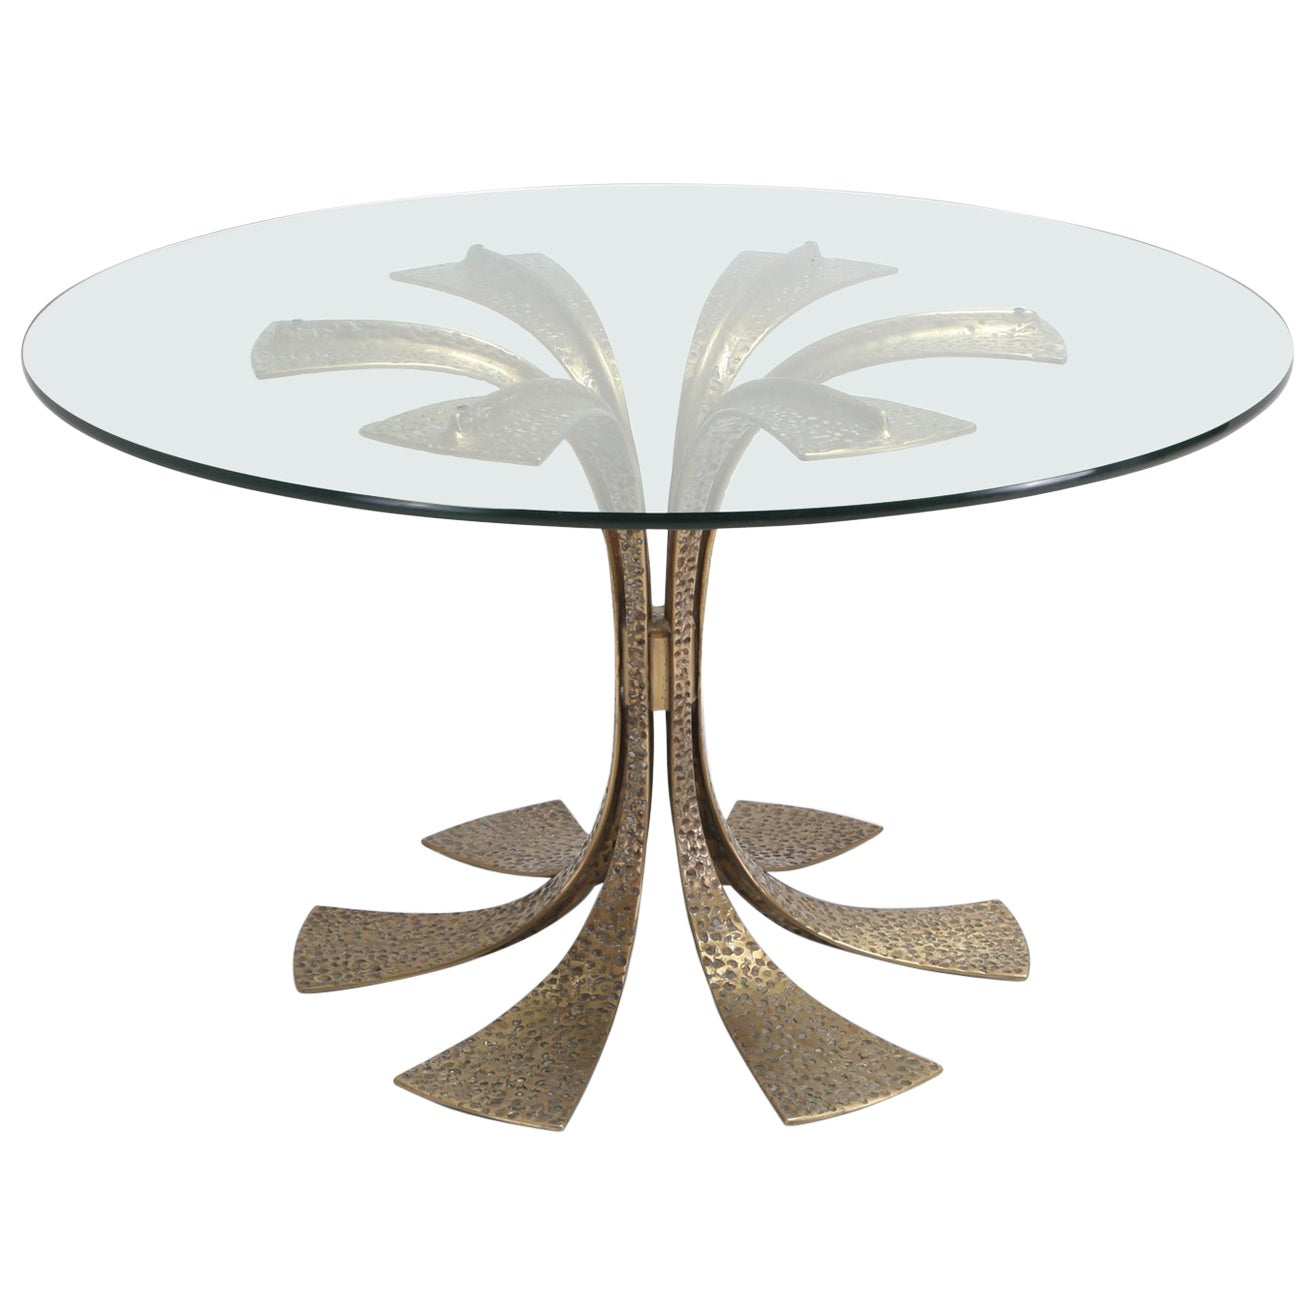 Hollywood Regency Hammered Brass Dining Table by Luciano Frigerio